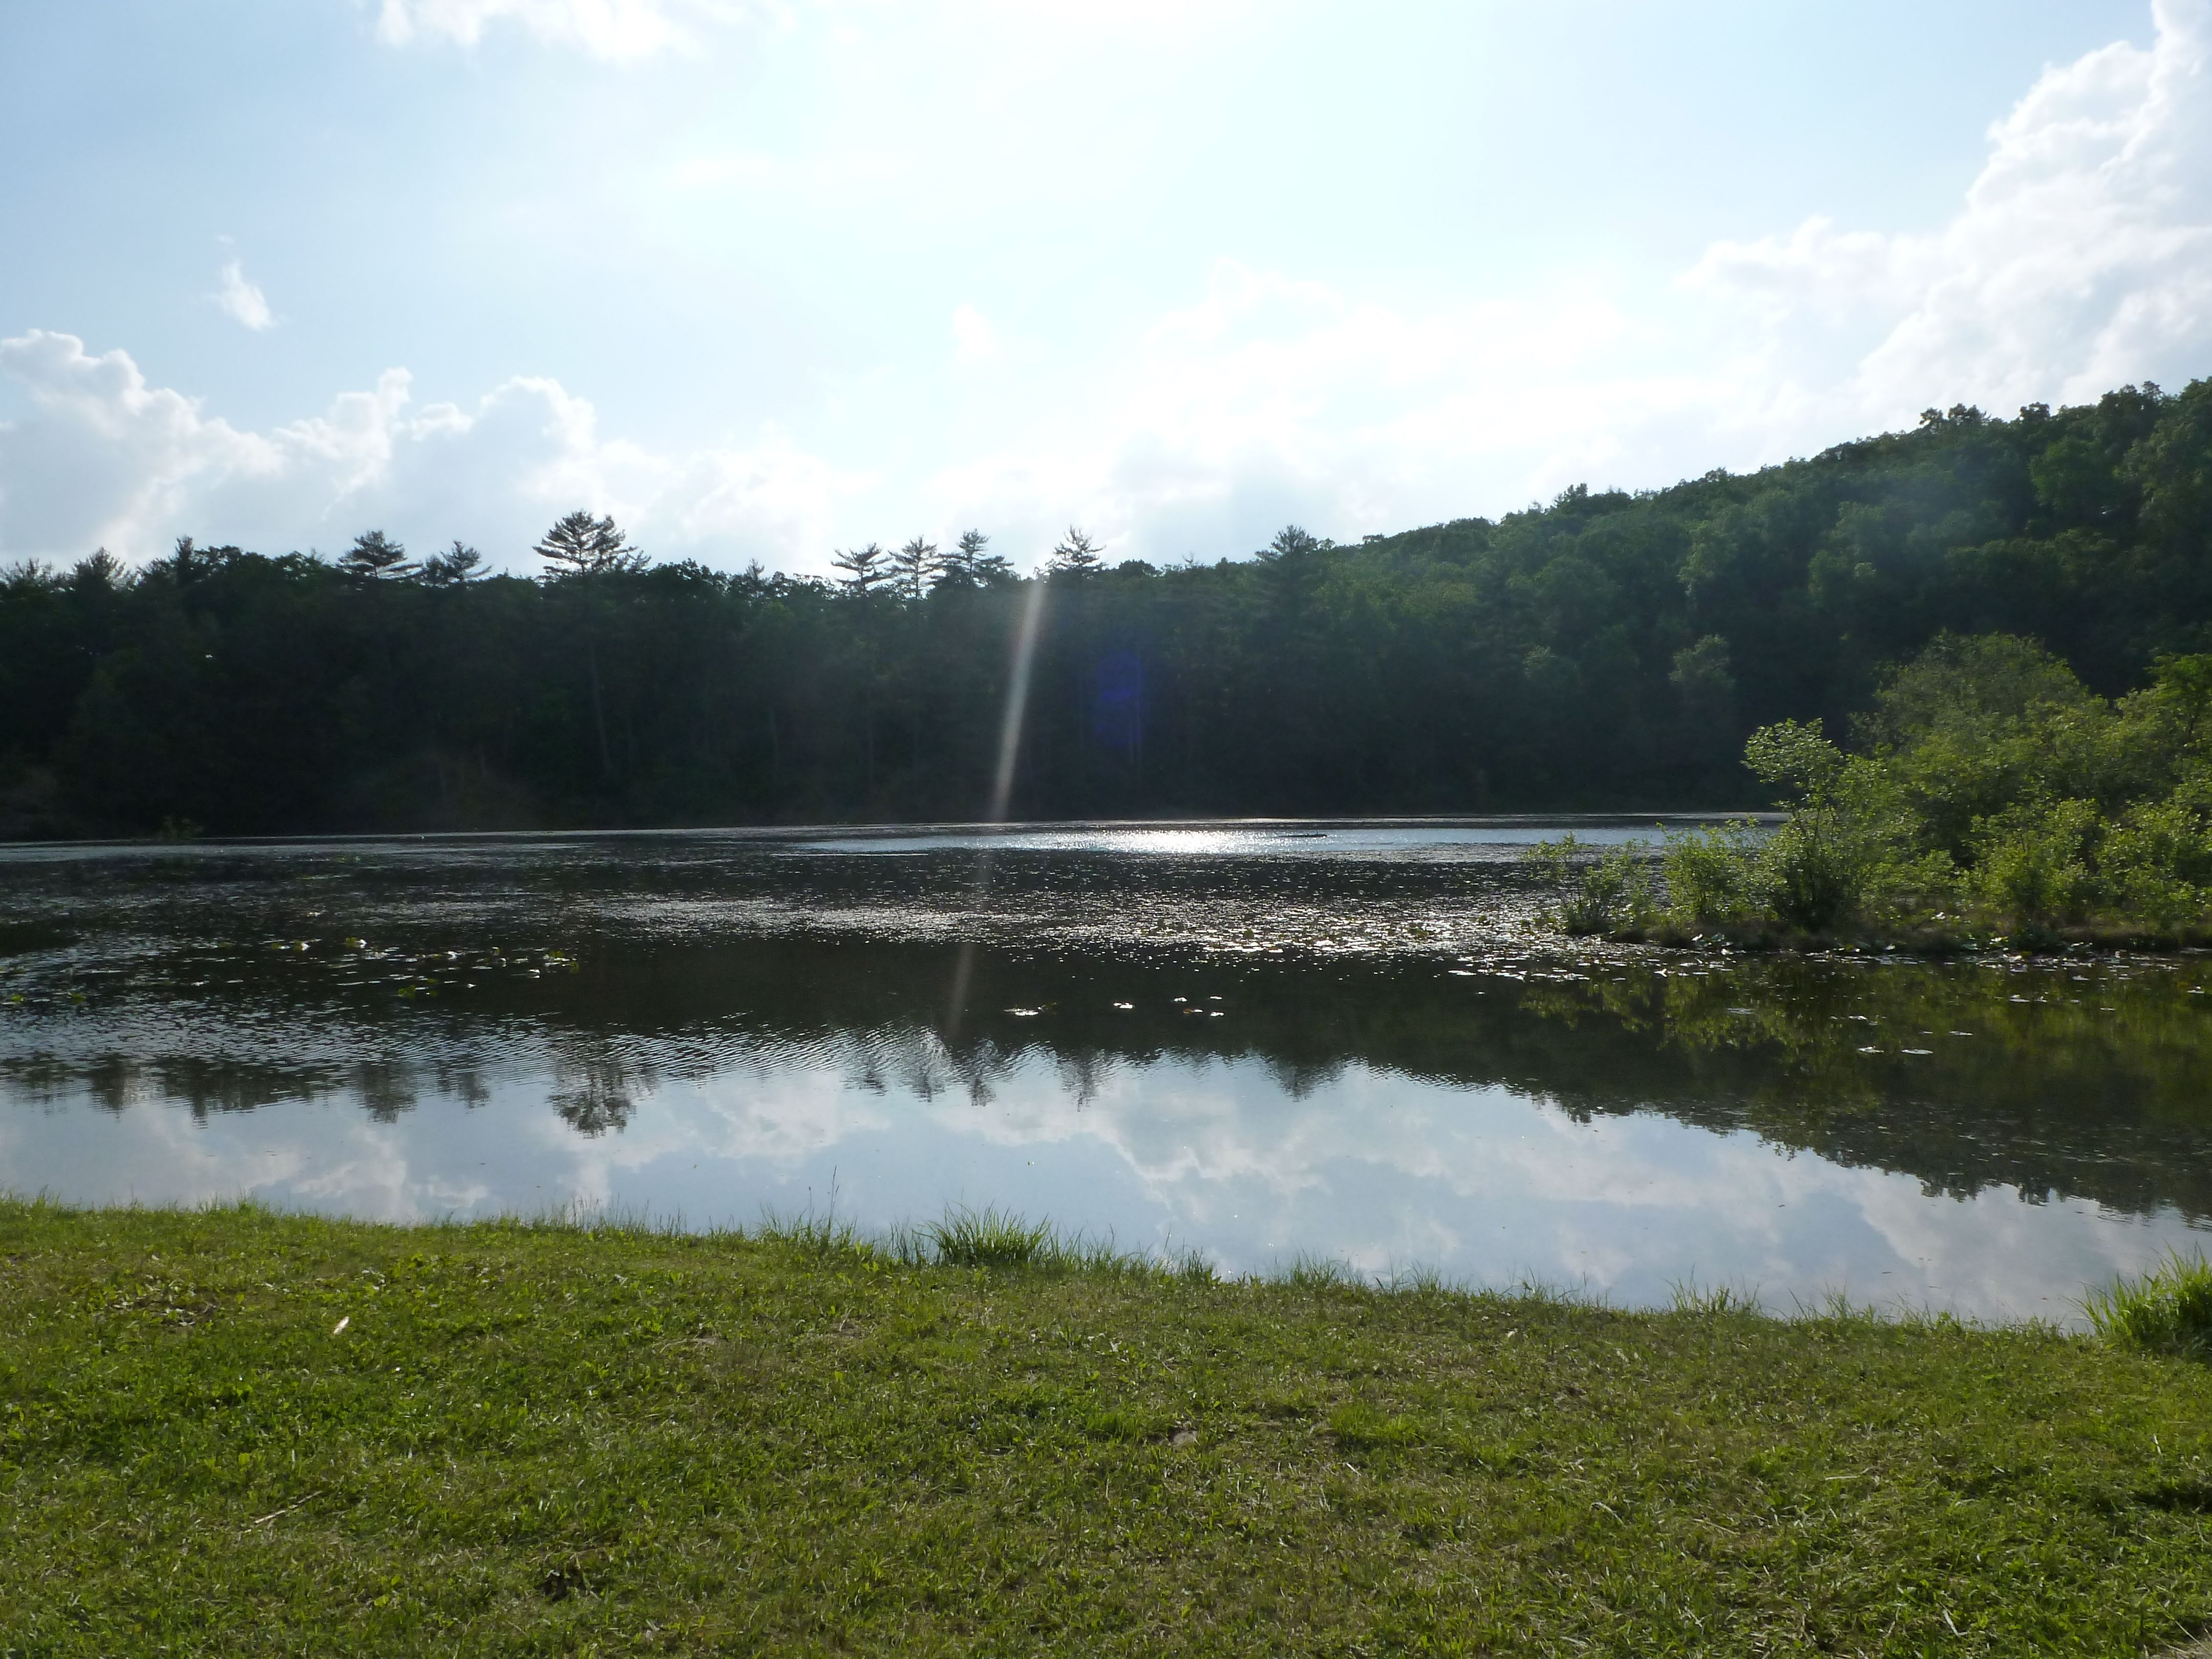 Whipple Dam State Park Rothrock State Forest